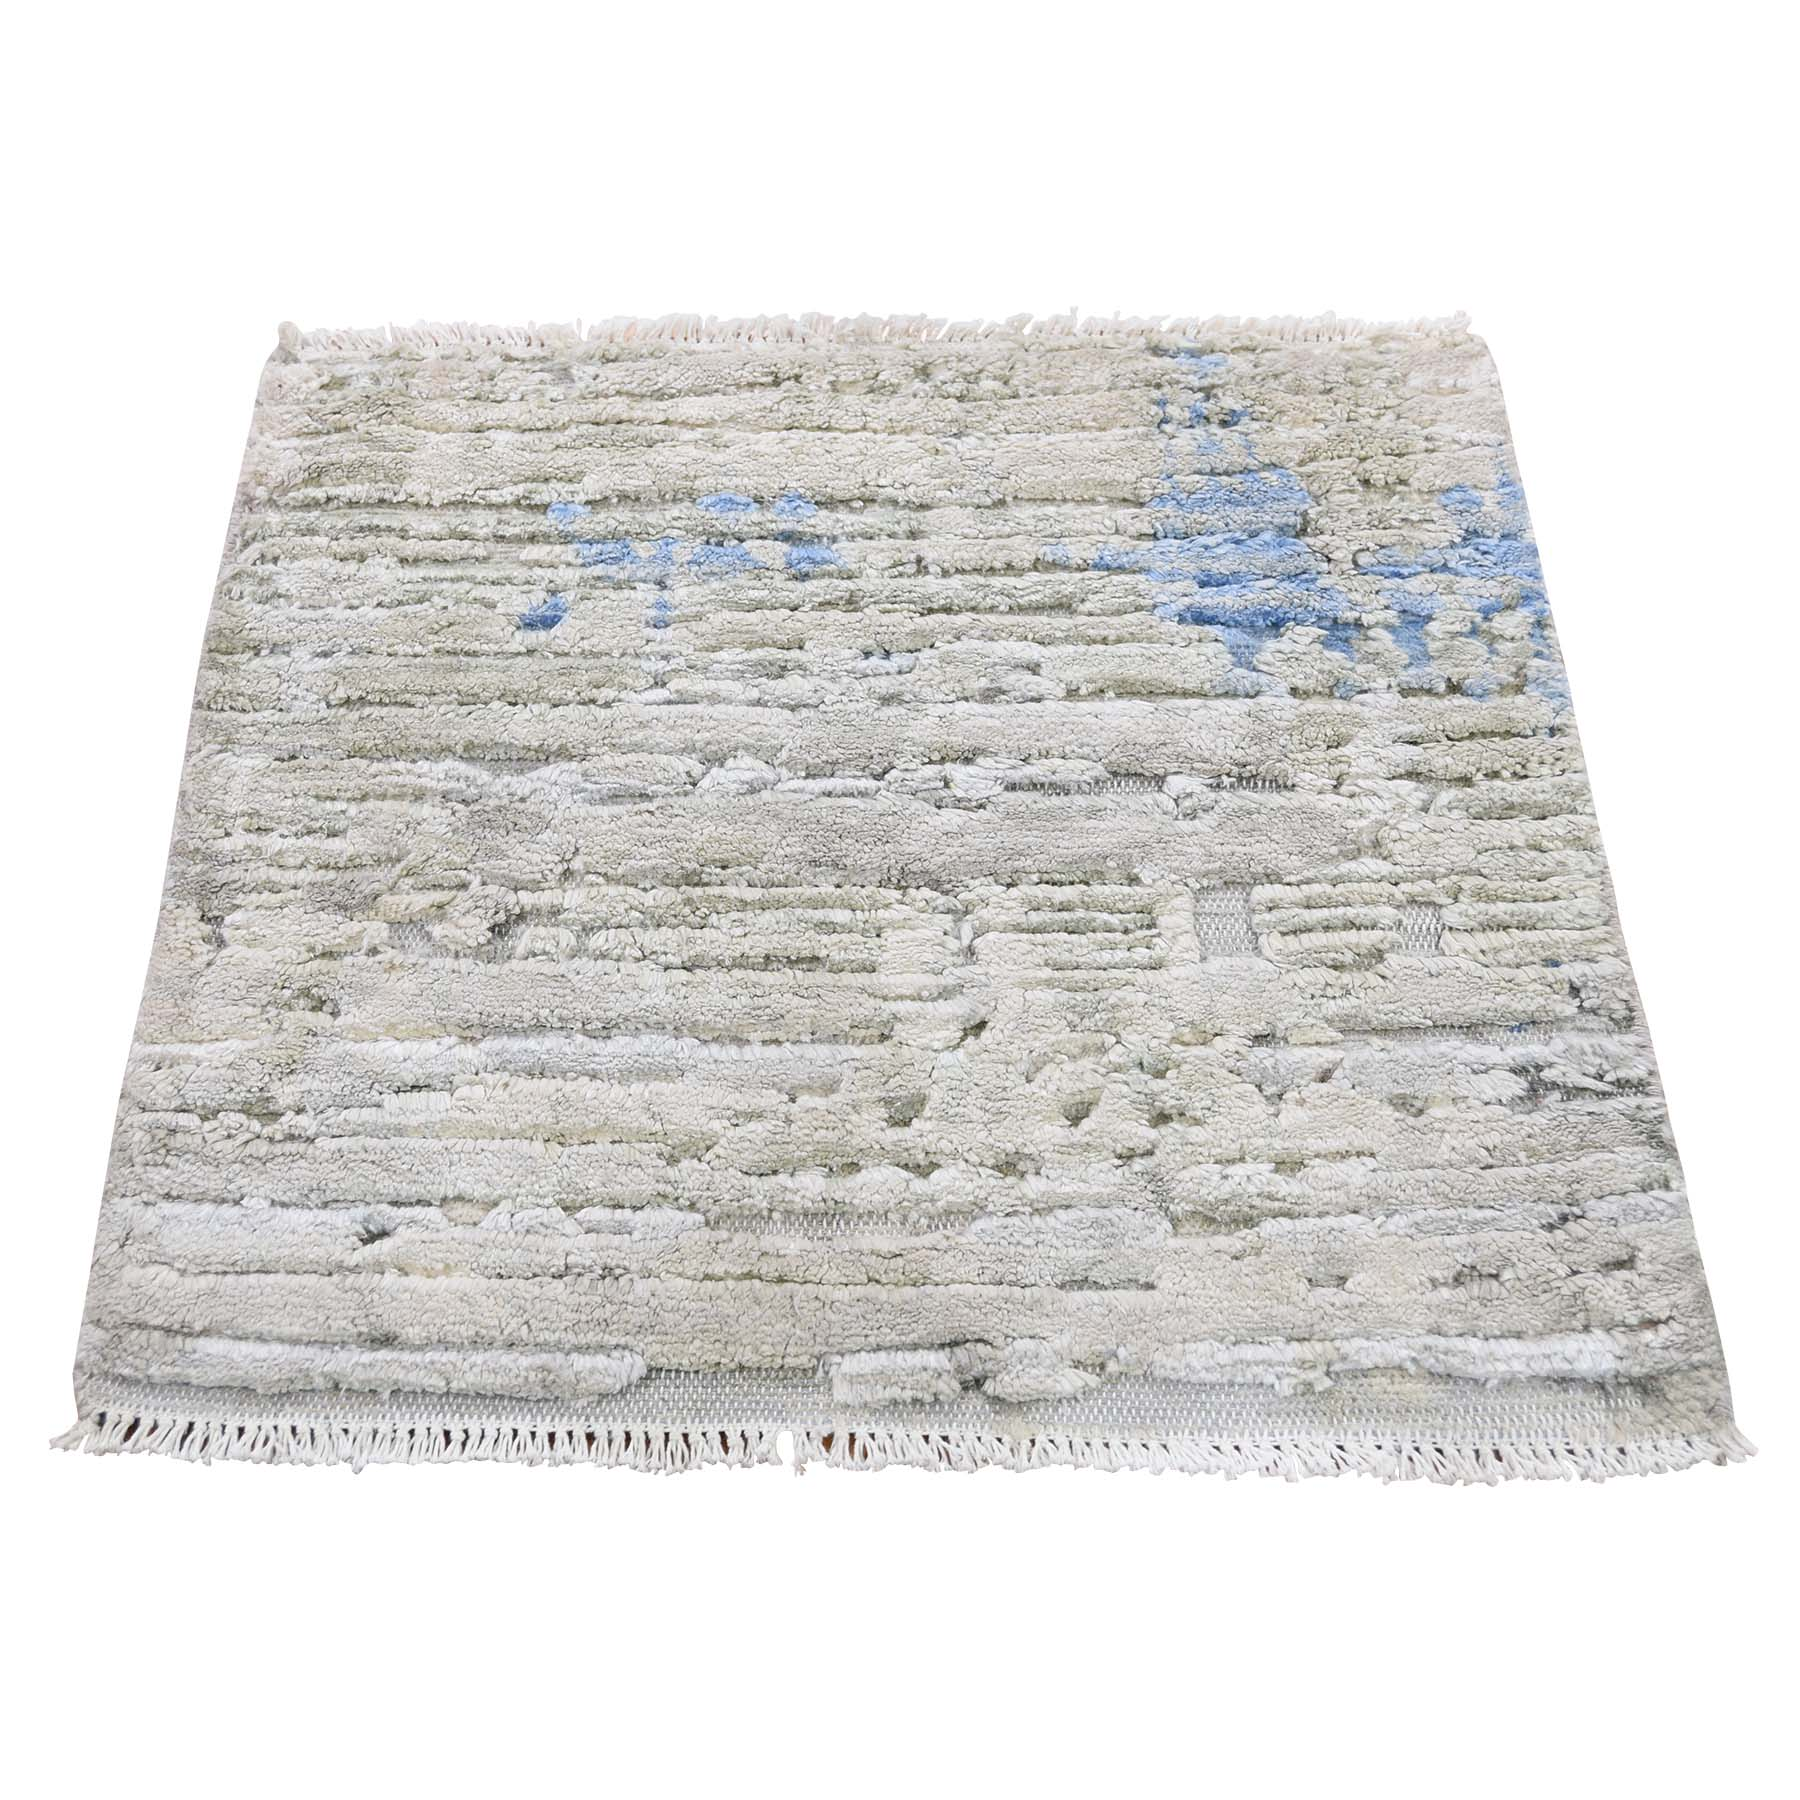 2'x2' Sampler Textured Pure Silk With Textured wool Hand-Knotted Oriental Rug